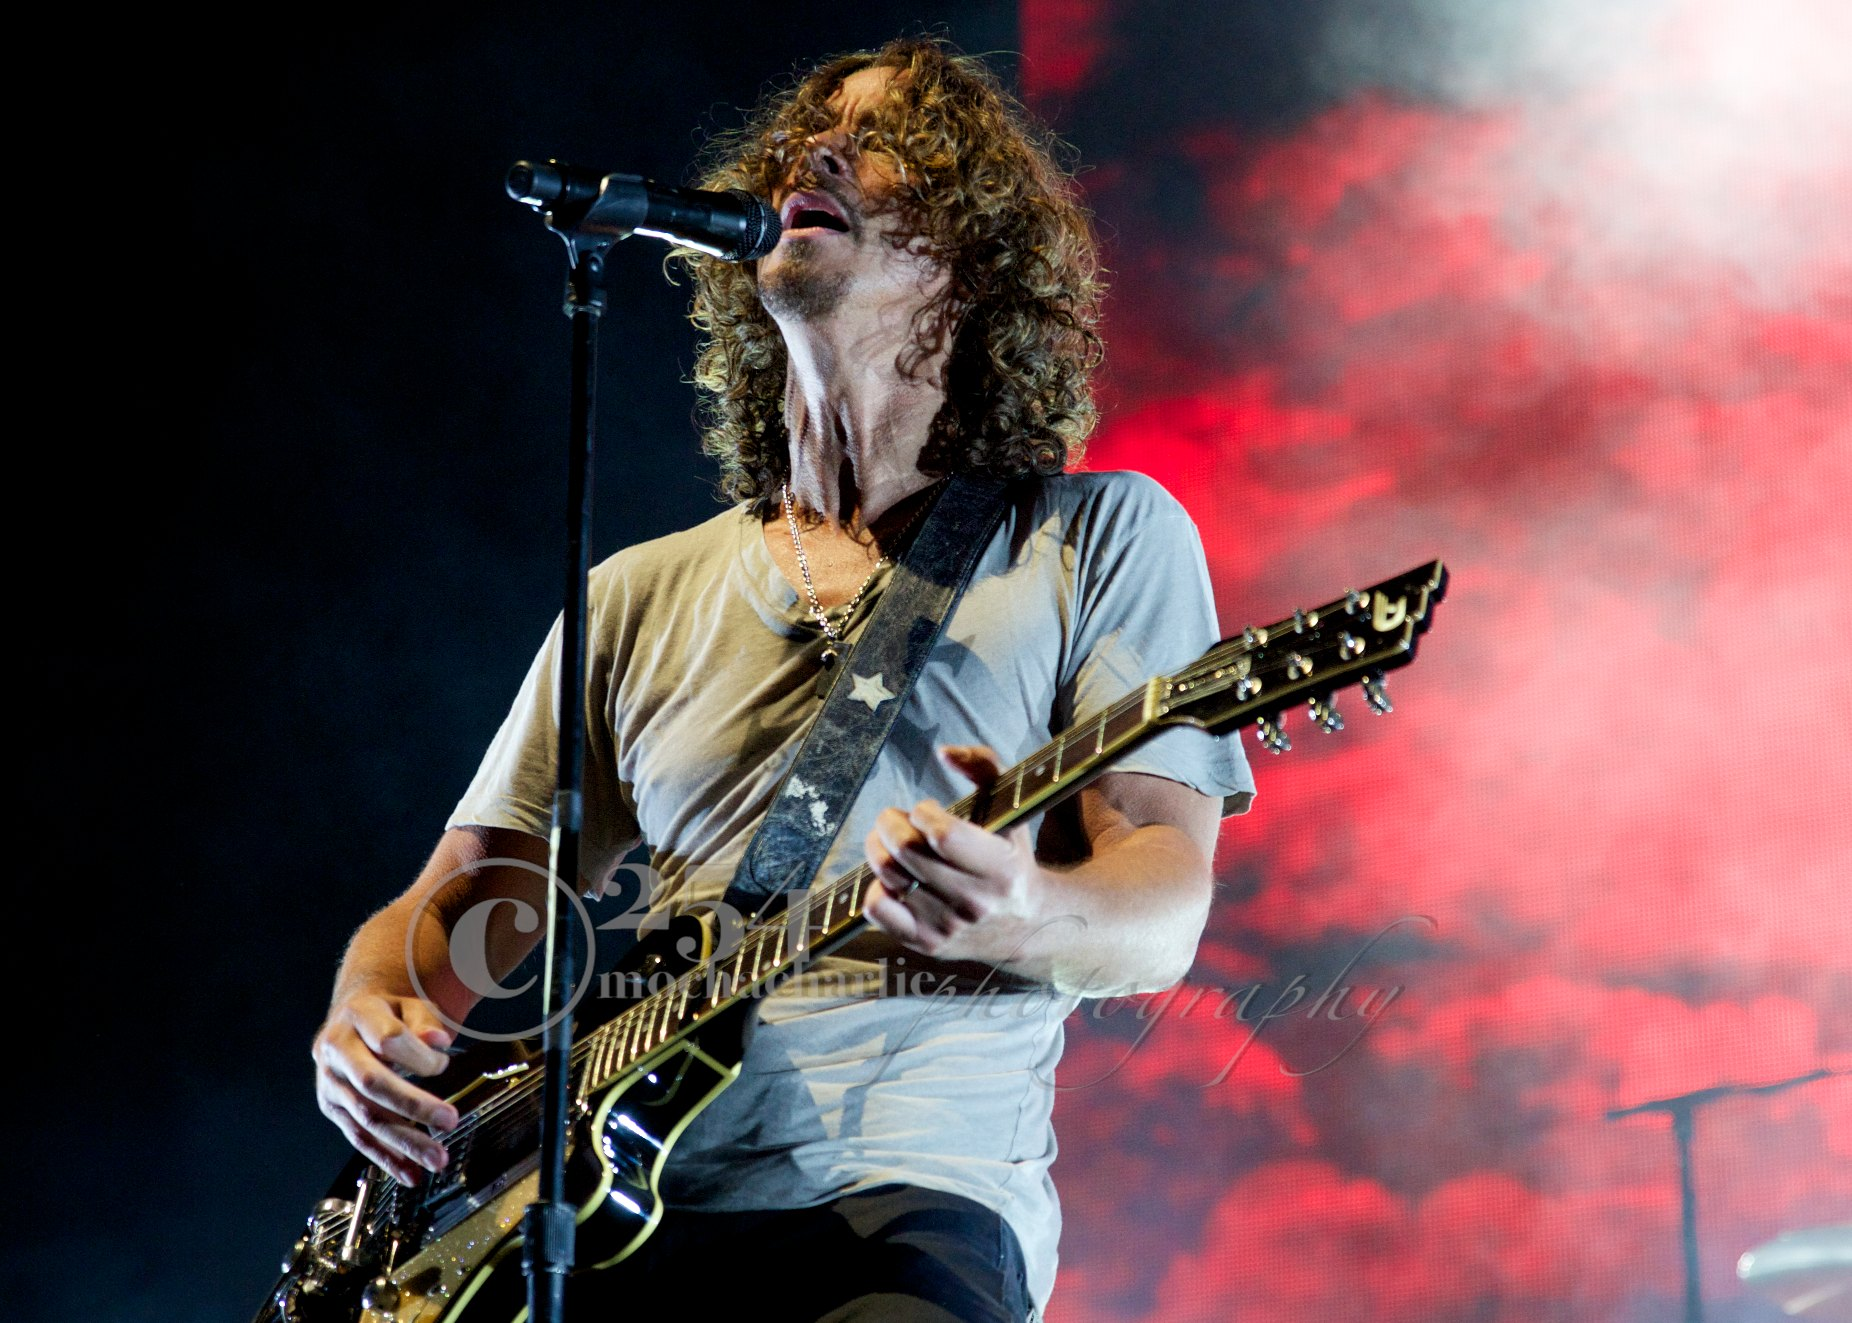 Soundgarden at White River Ampitheatre (Photo by Mocha Charlie)